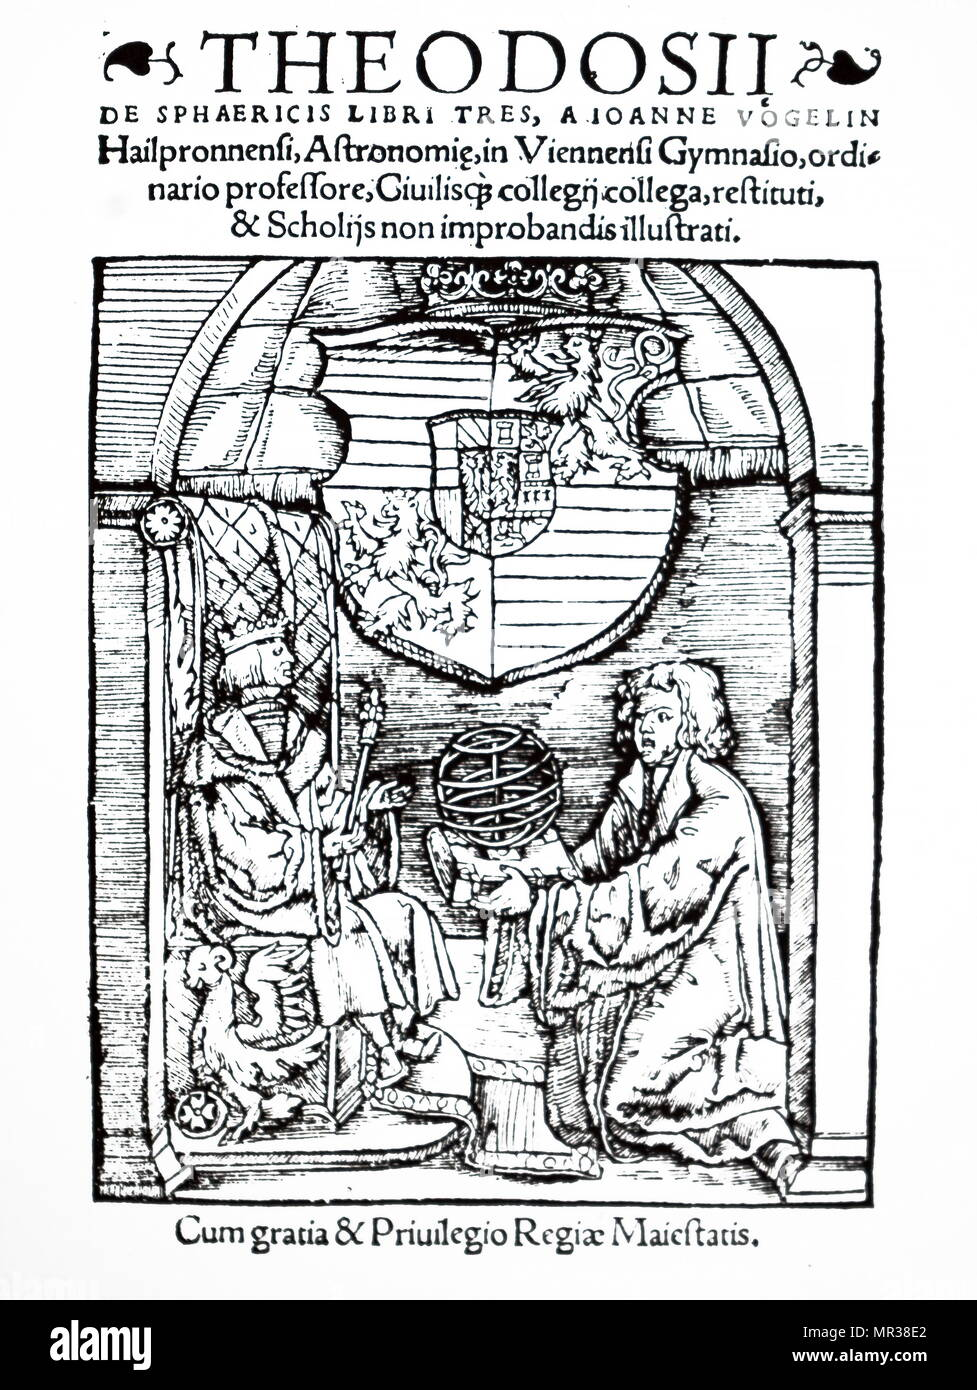 Title page of the translated version of De Sphaericus of Theodosius of Tripoli. Pictured is Johann Voegelin presenting the book and an armillary sphere to Ferdinand I, Holy Roman Emperor. Ferdinand I, Holy Roman Emperor (1503-1564) King of Bohemia, King of Hungary and King of Croatia. Dated 16th century - Stock Image